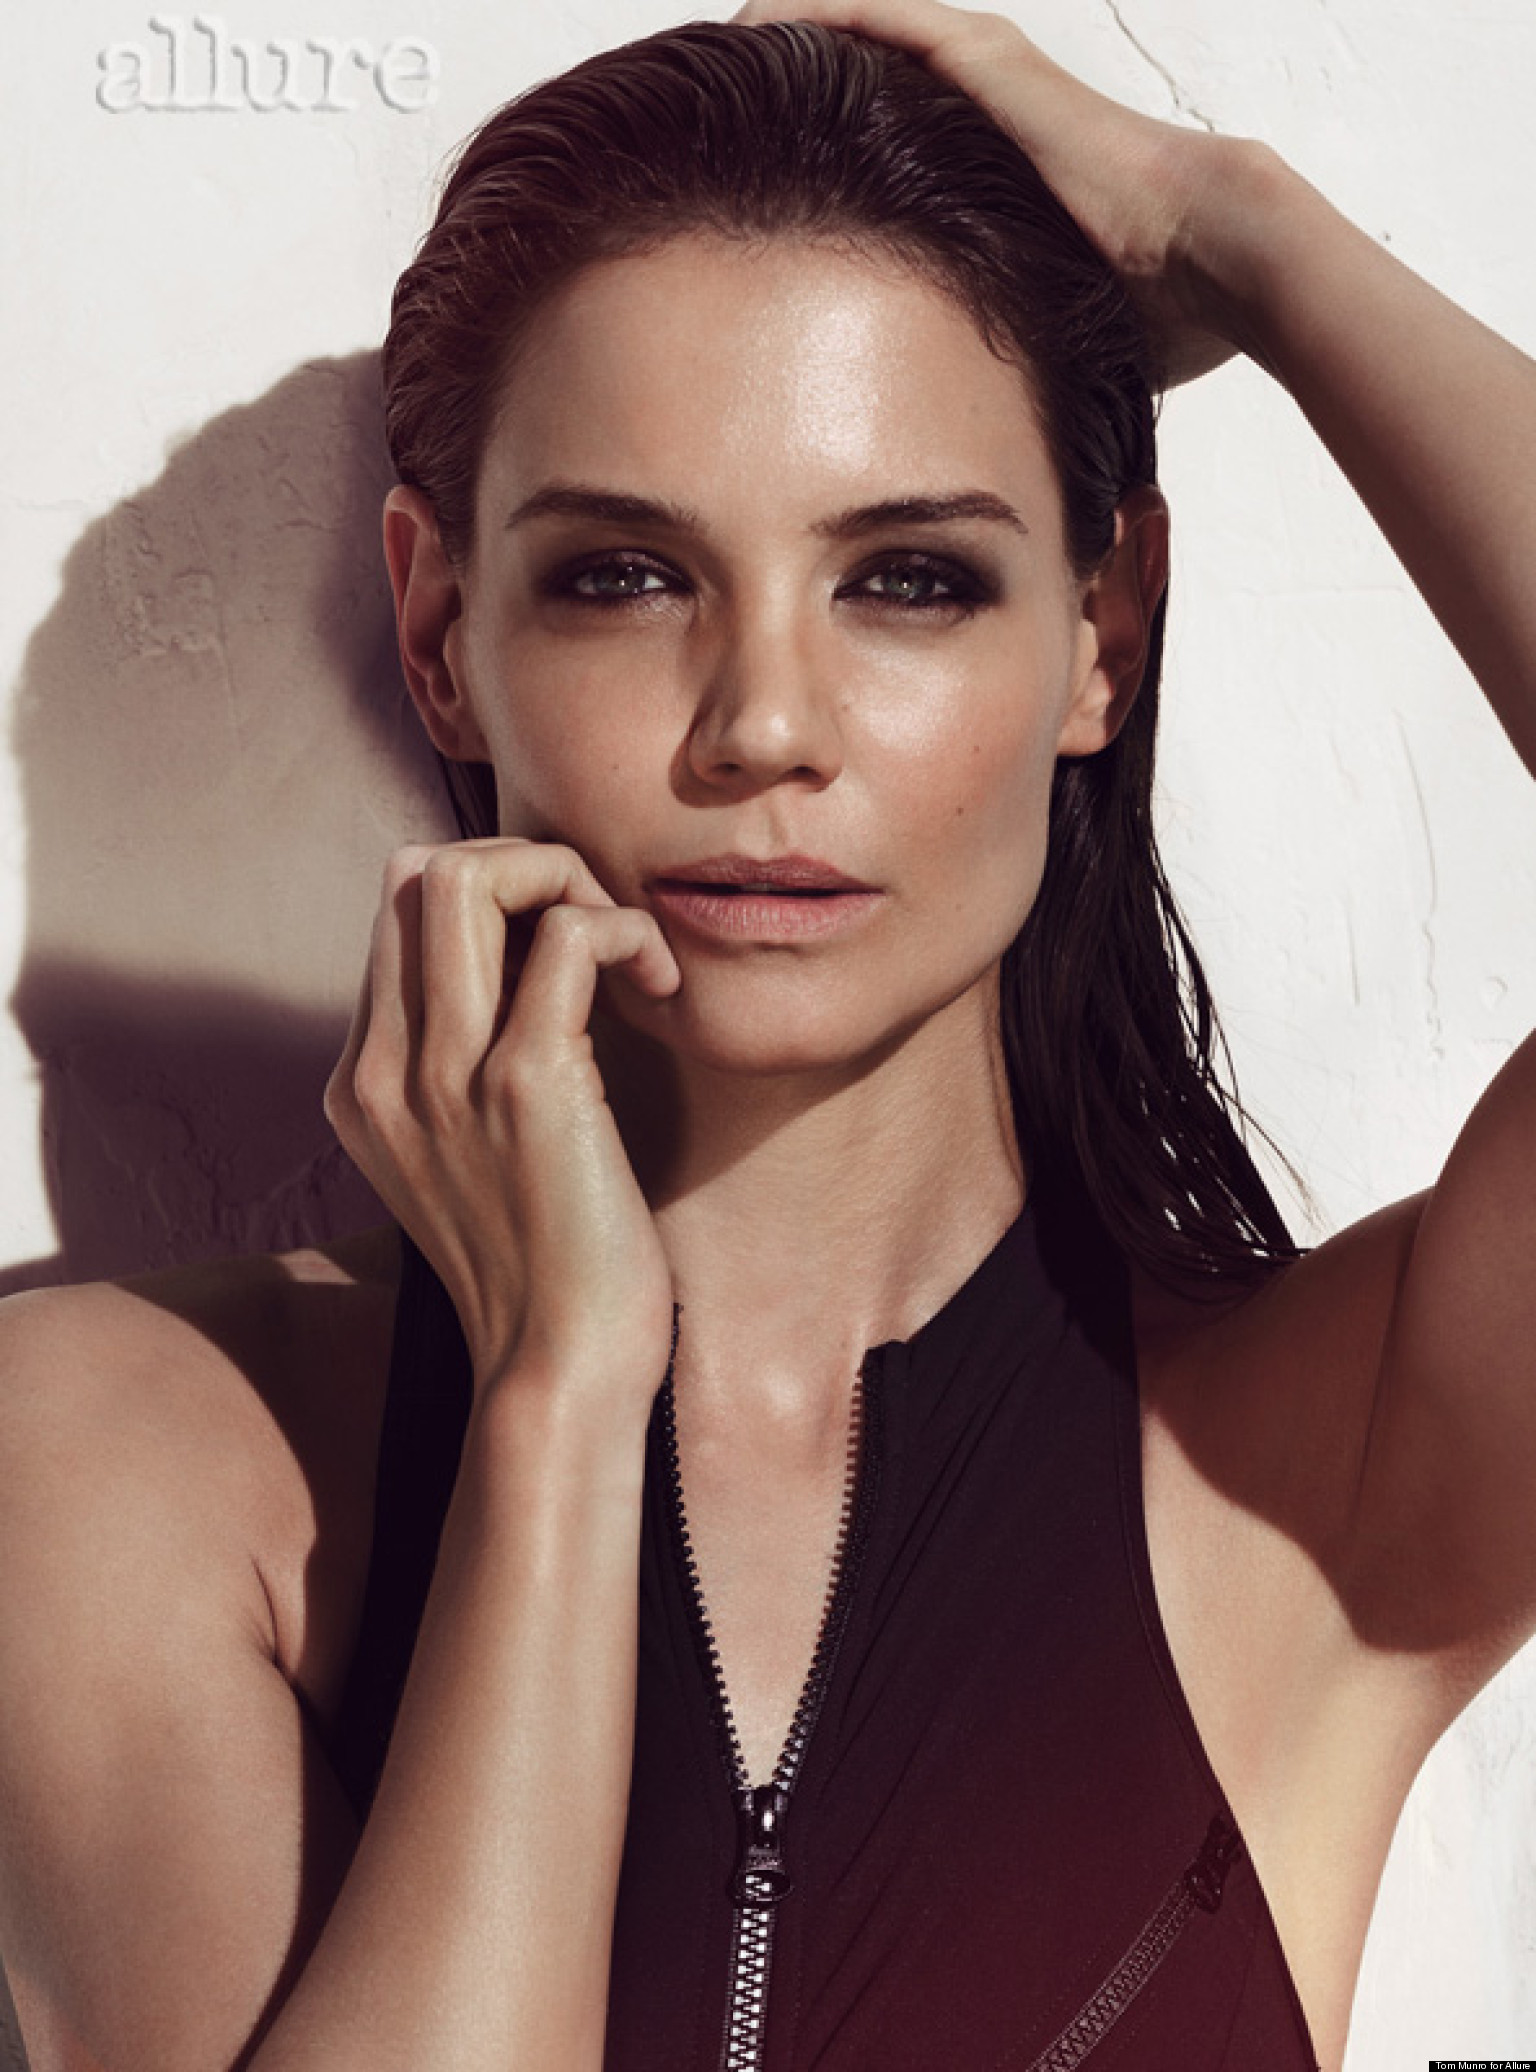 Katie Holmes Hot On Allure Cover, Talks Having More Kids And ...